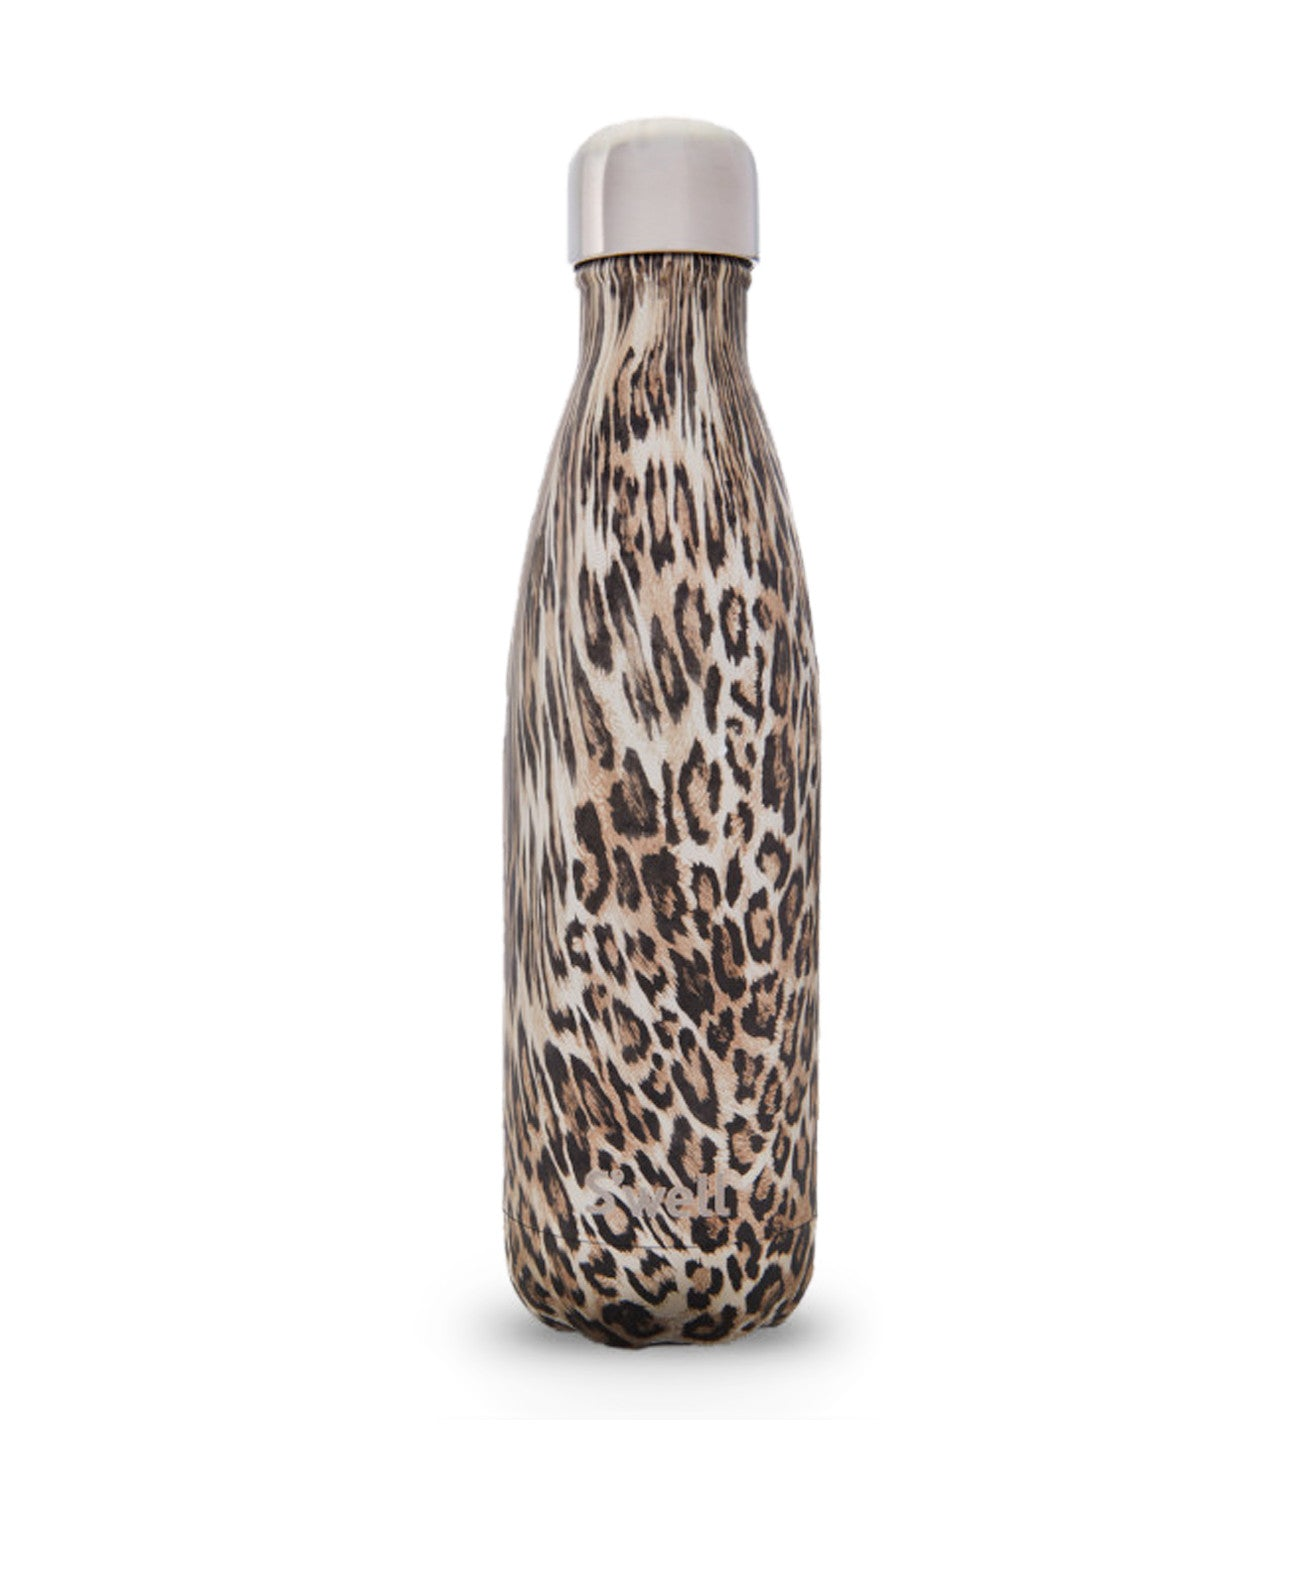 TXKC-17-A16 17oz Bottle Cheetah